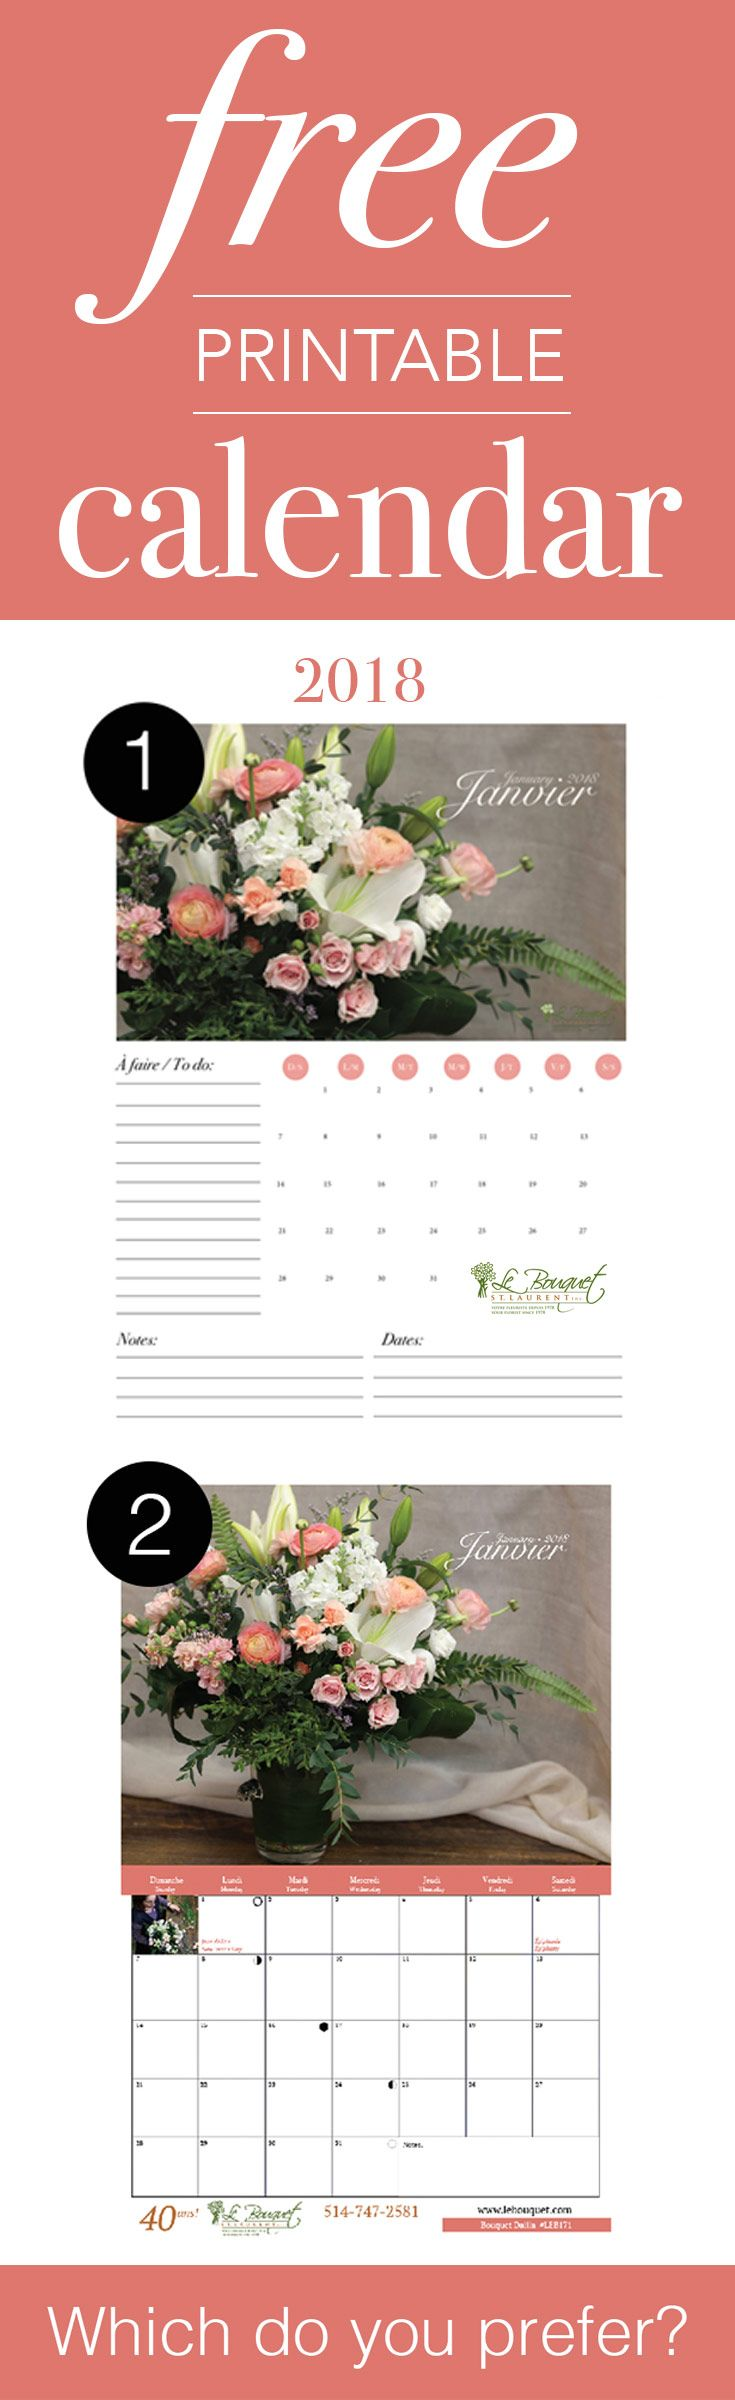 Free printable calendars in two styles from Montreal florist Le Bouquet St Laurent!